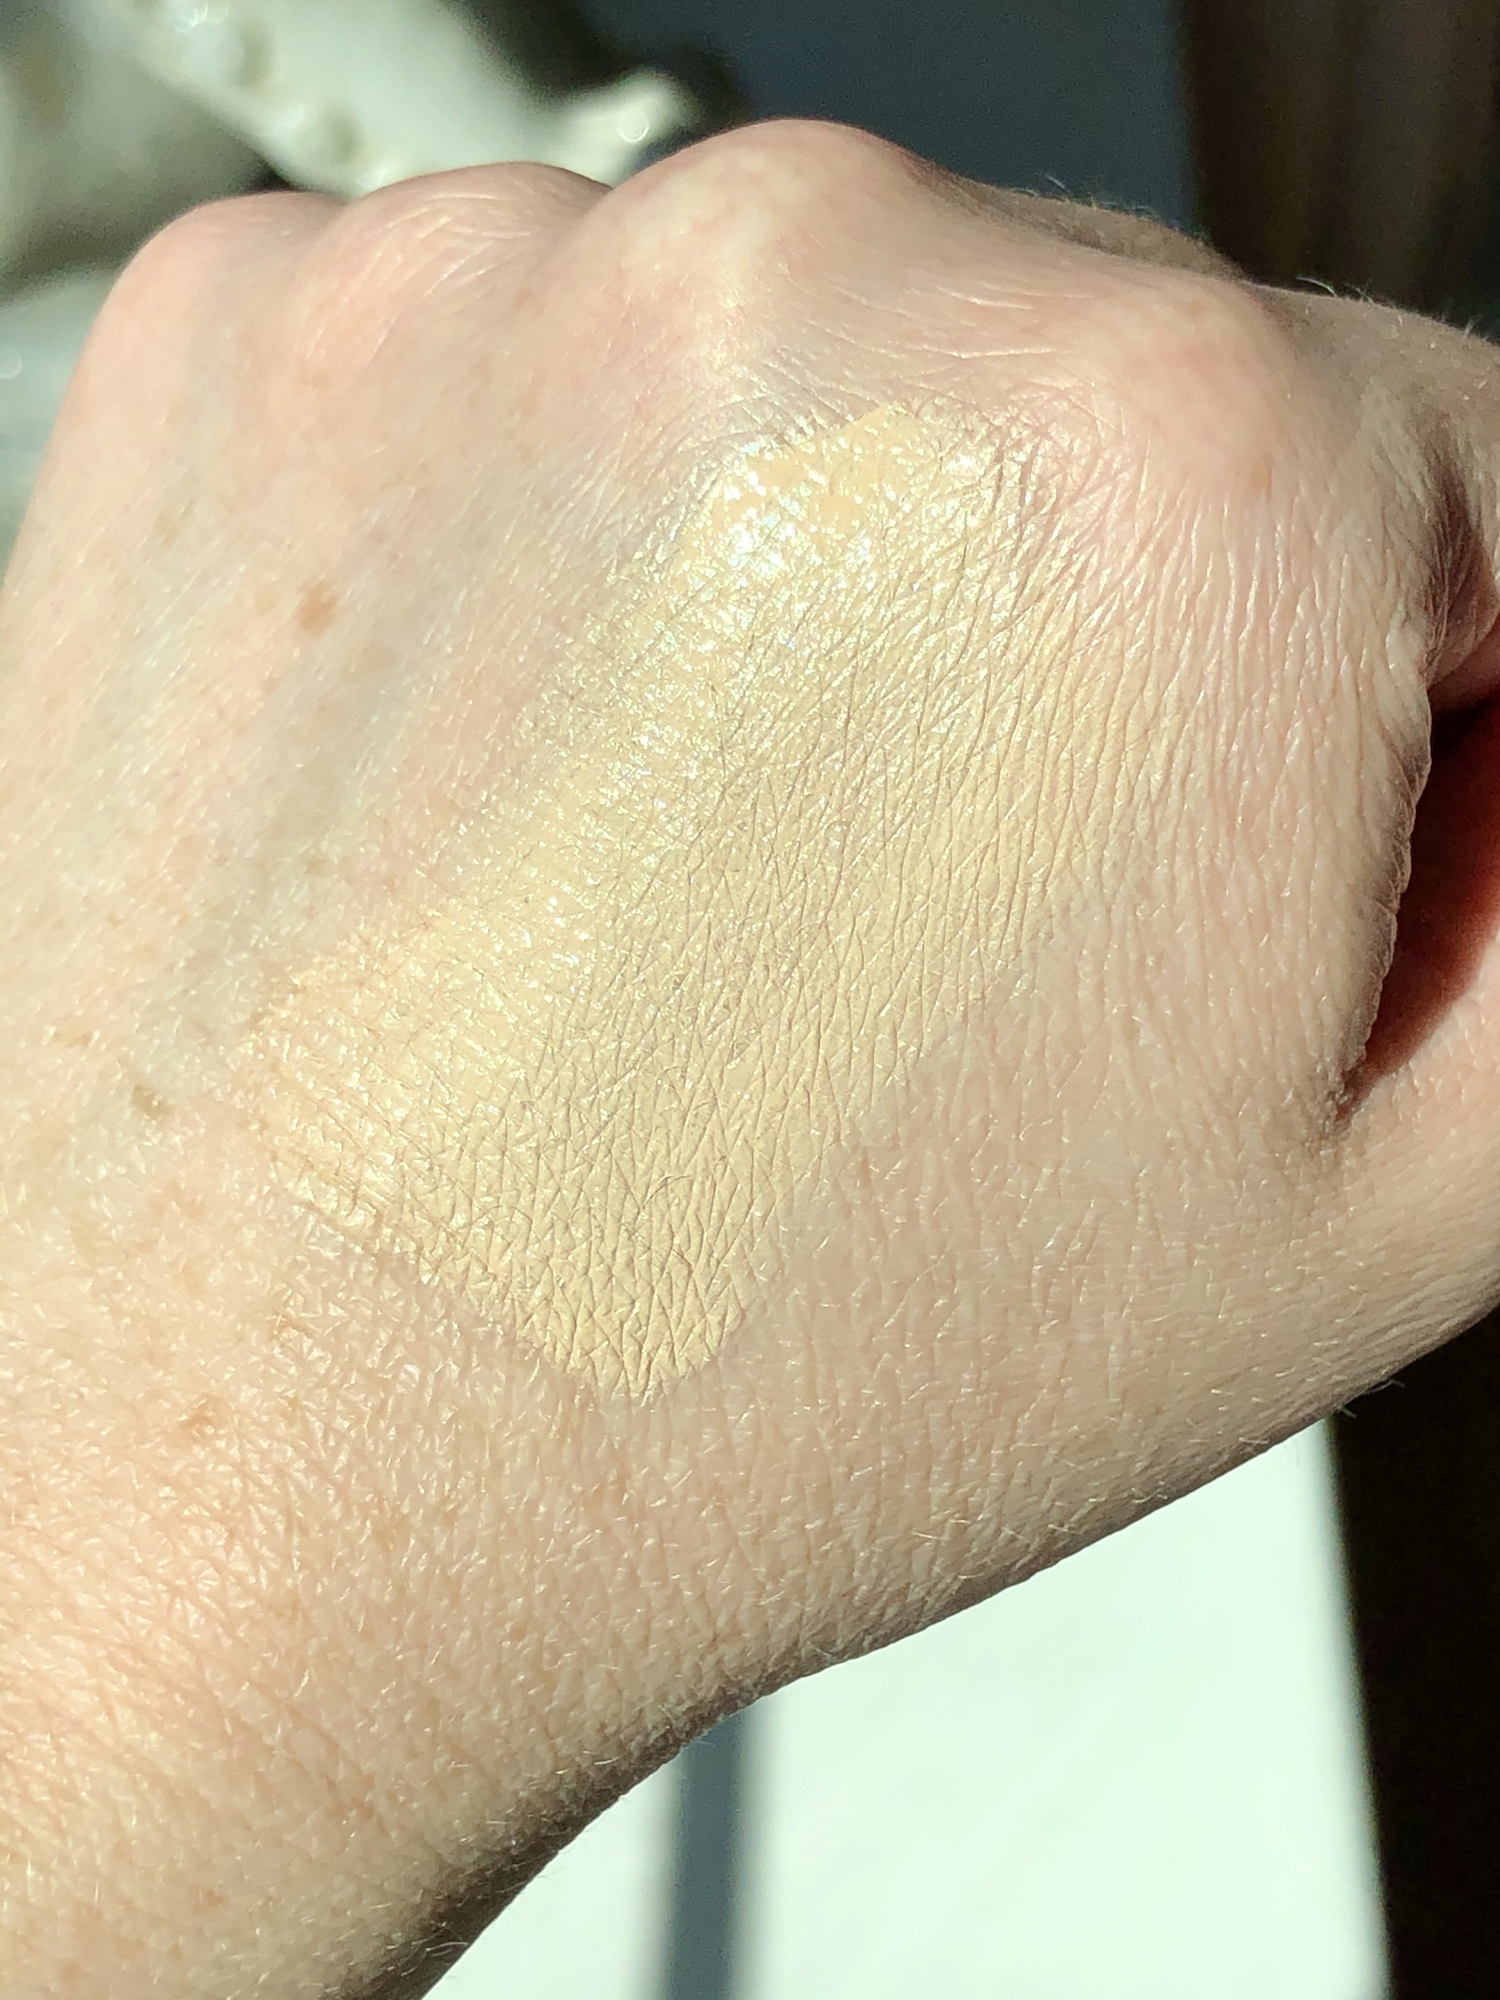 Swatch of shade 12 from the Make Up For Ever Ultra HD Self-Setting Concealer, which is fair with neutral undertones